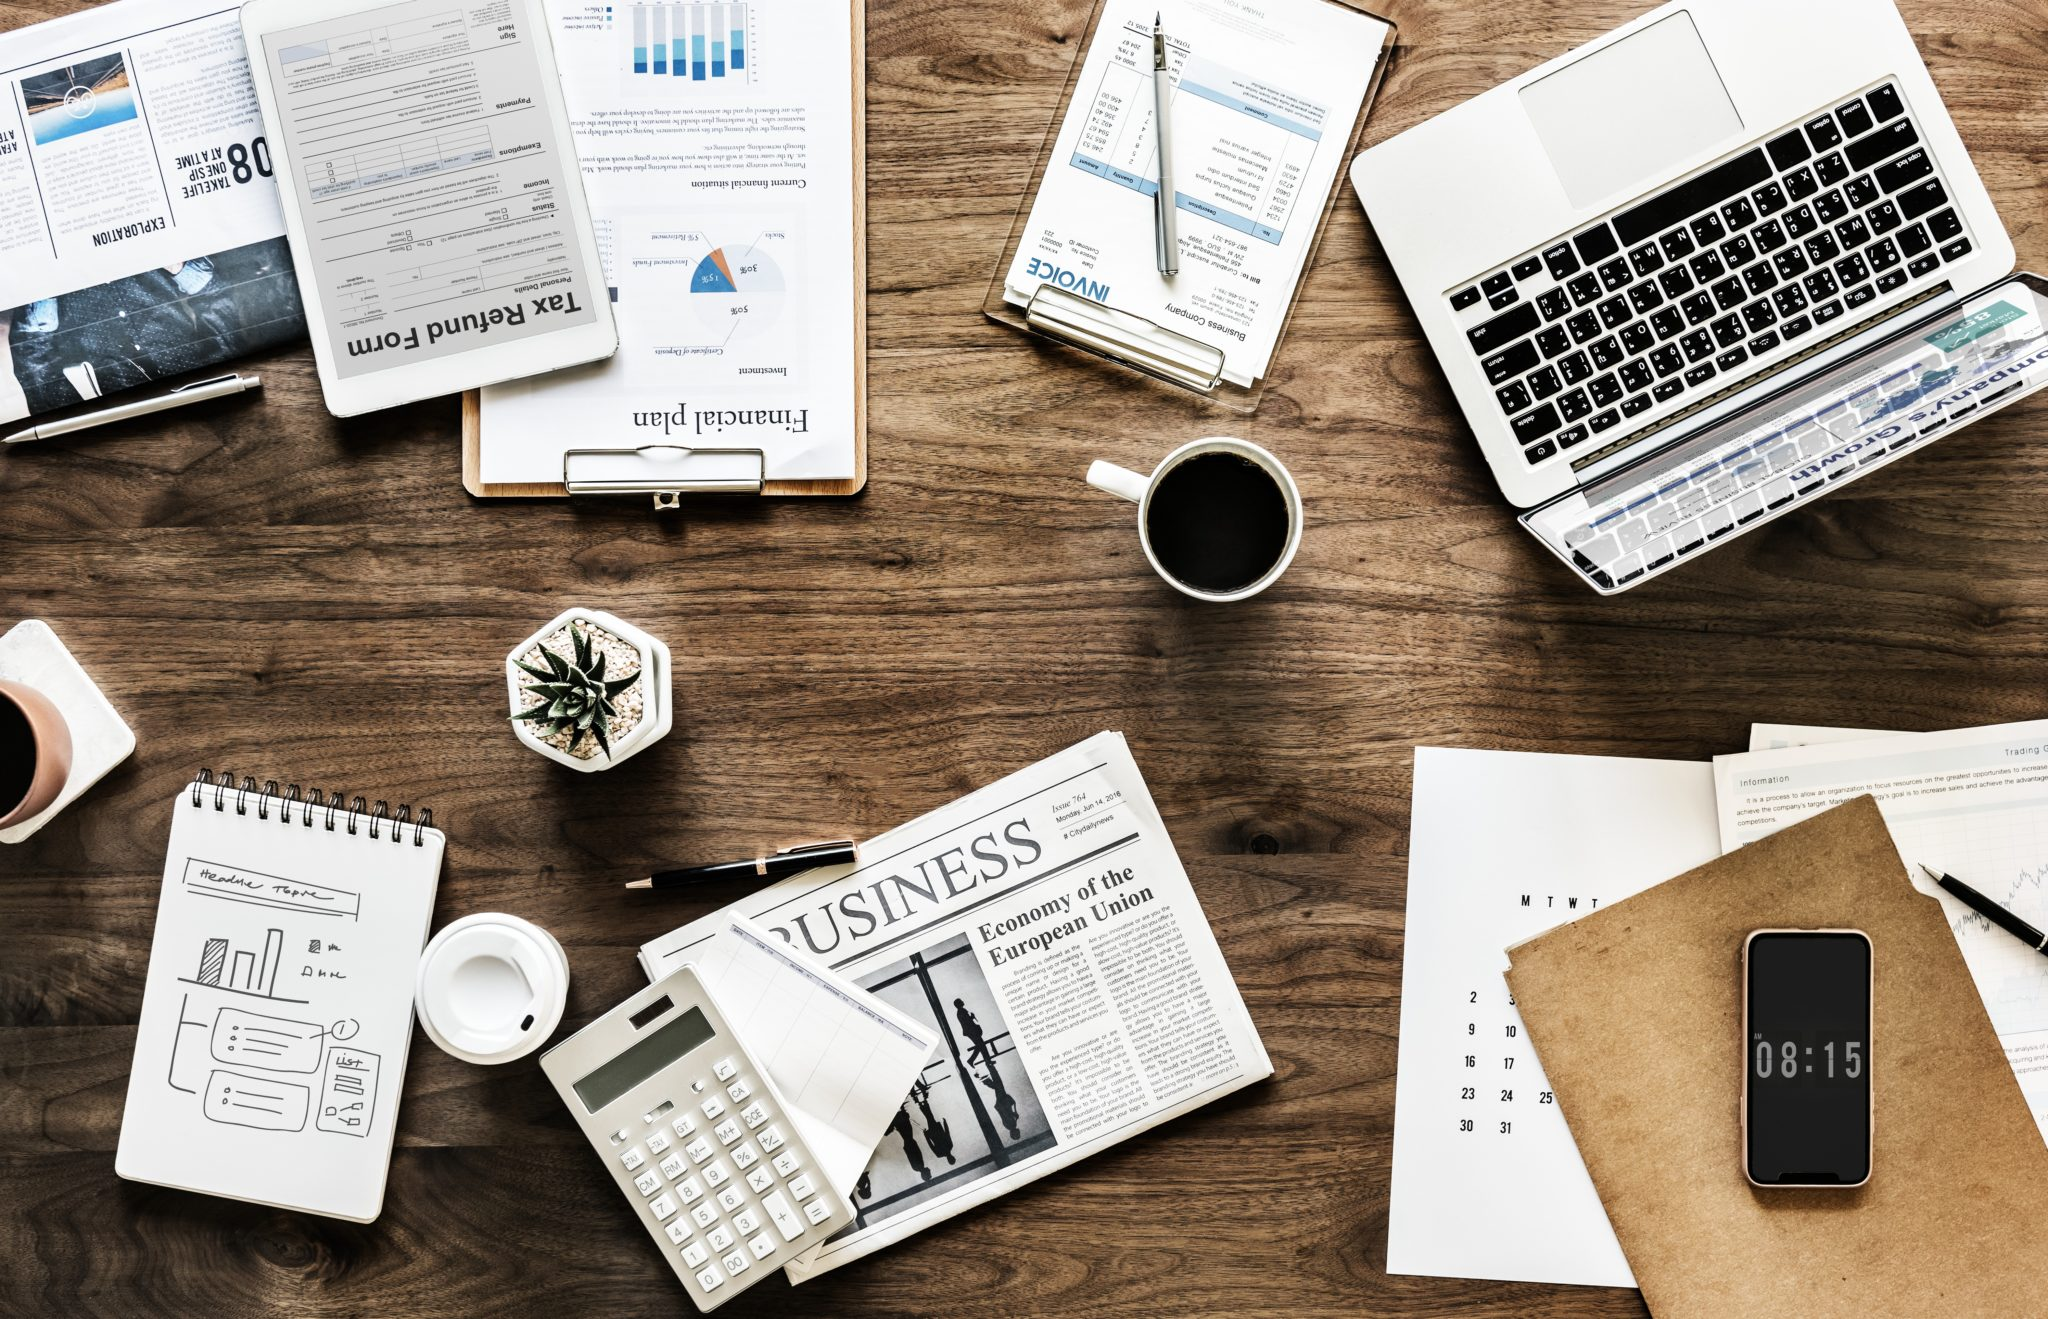 The Ultimate Guide To Marketing For Small Businesses